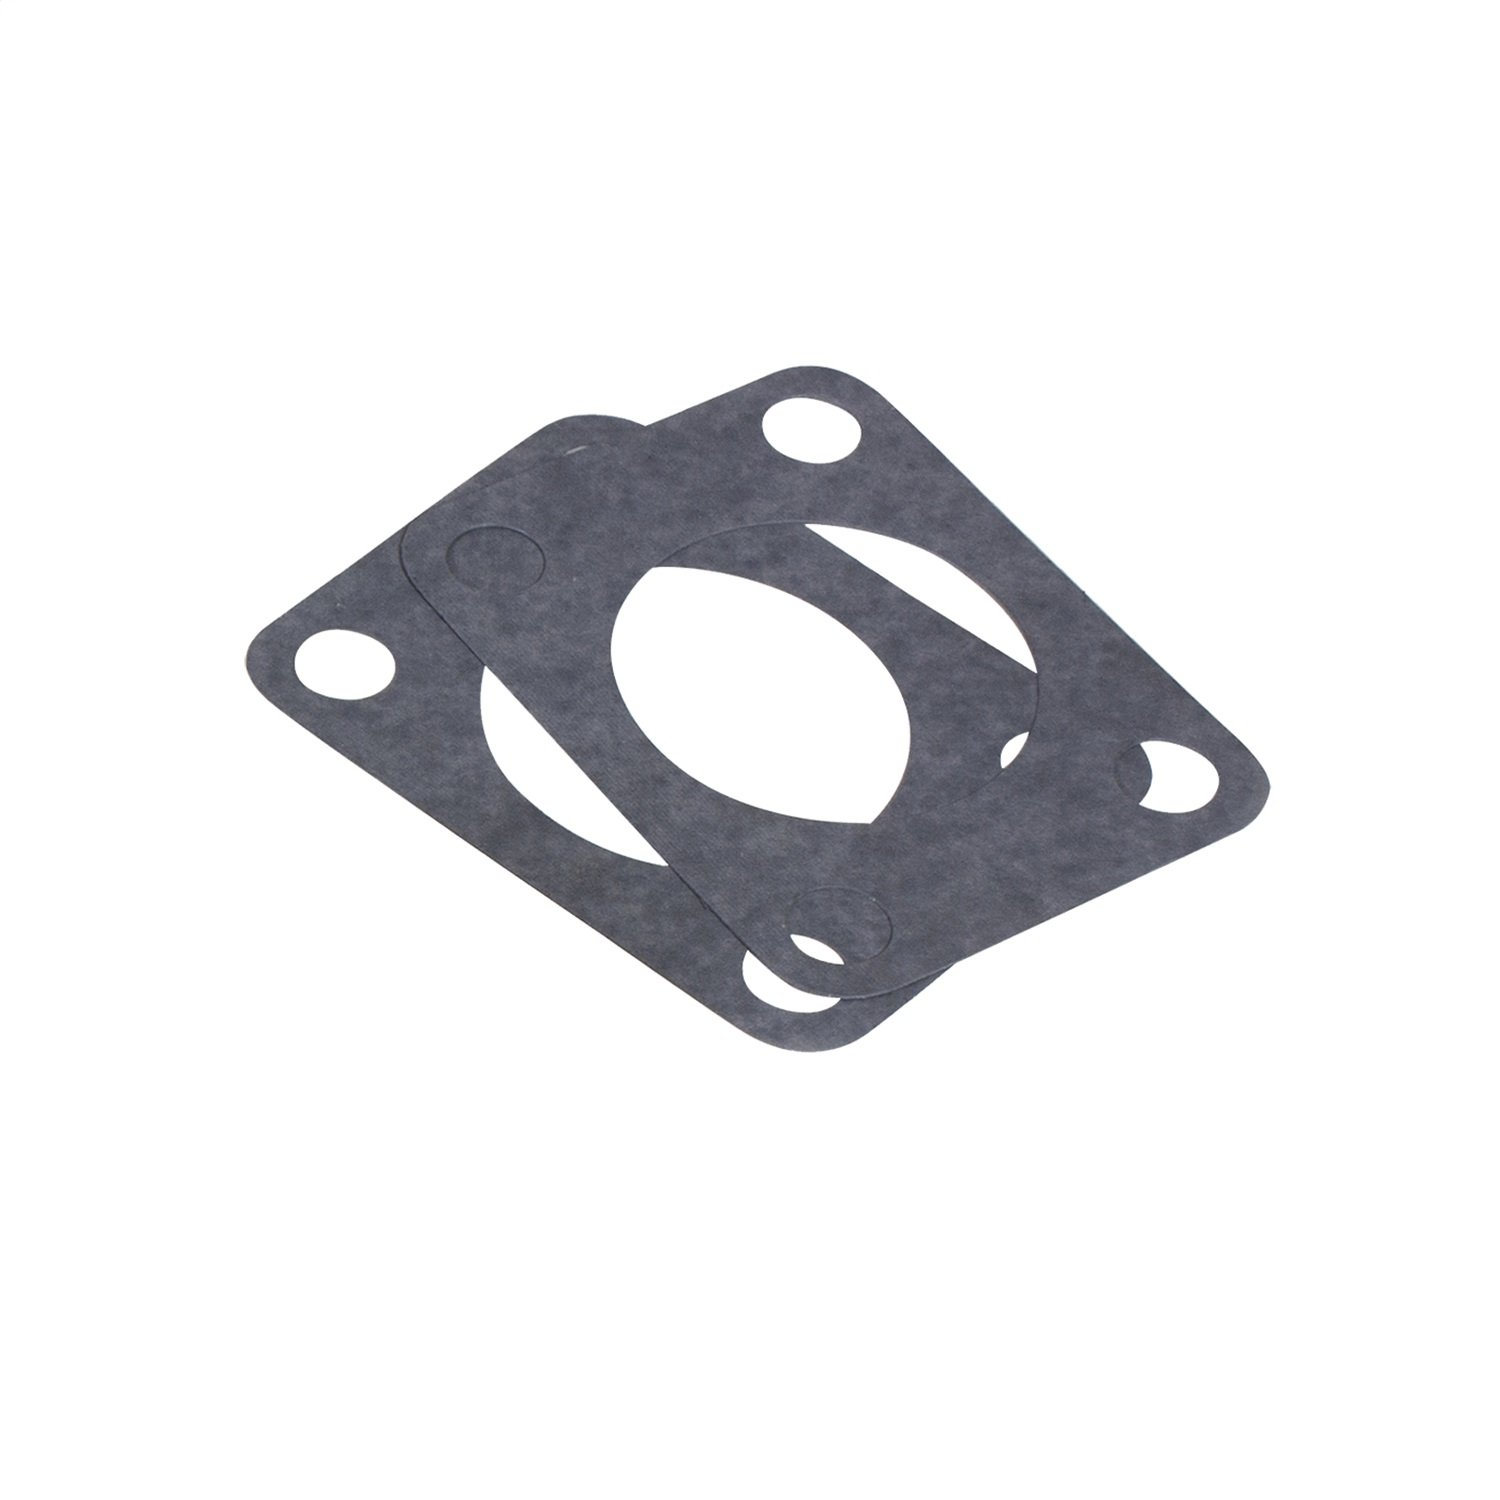 Yukon (YP KP-005) Replacement King-Pin Cap Gasket for Dana 60 Differential Yukon Gear